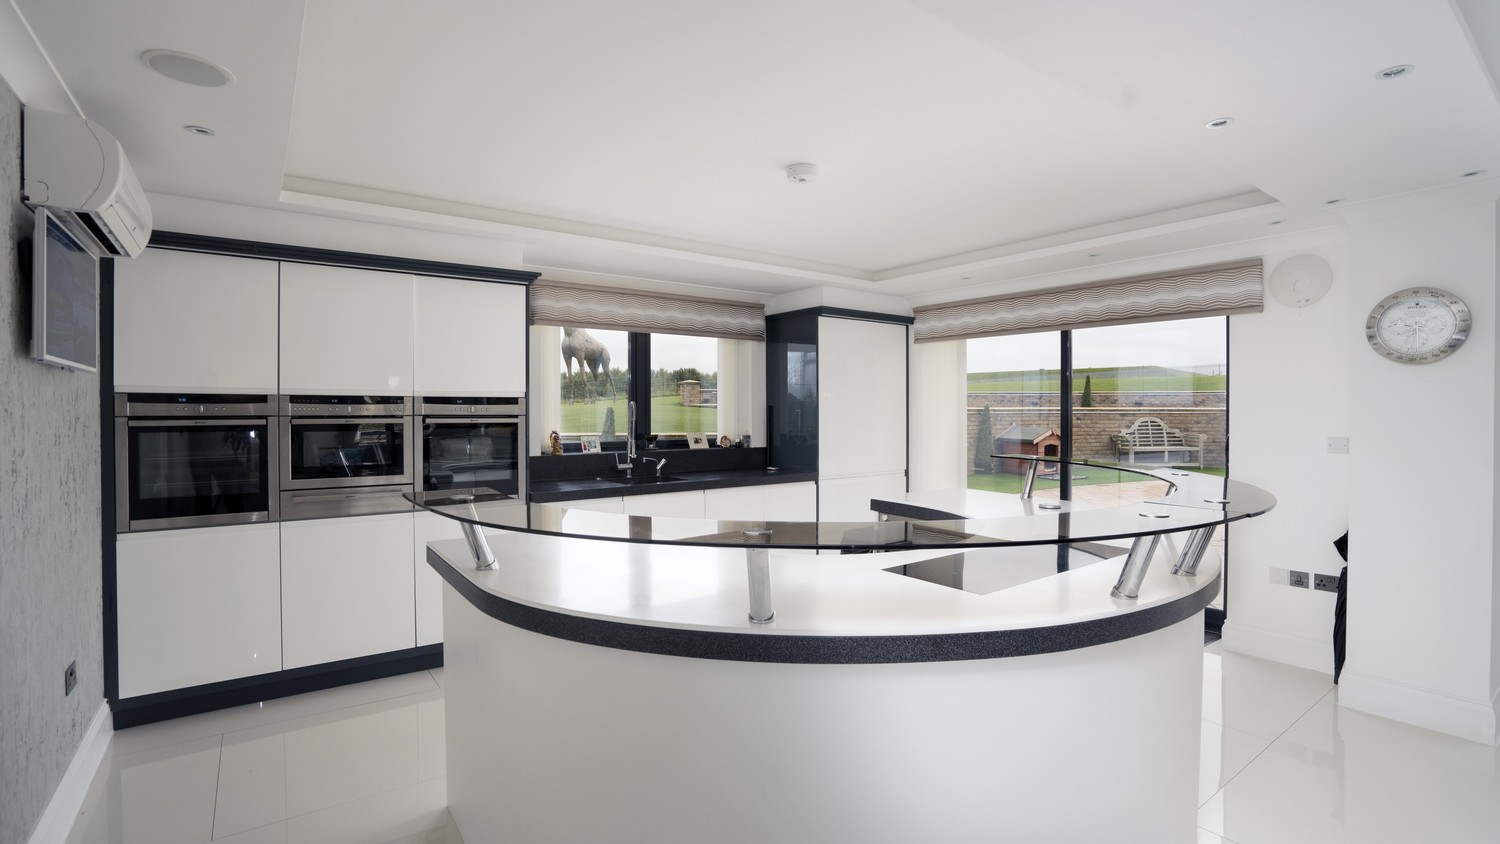 Gloss white kitchen with unique blue deep border and matching Corian worktops.